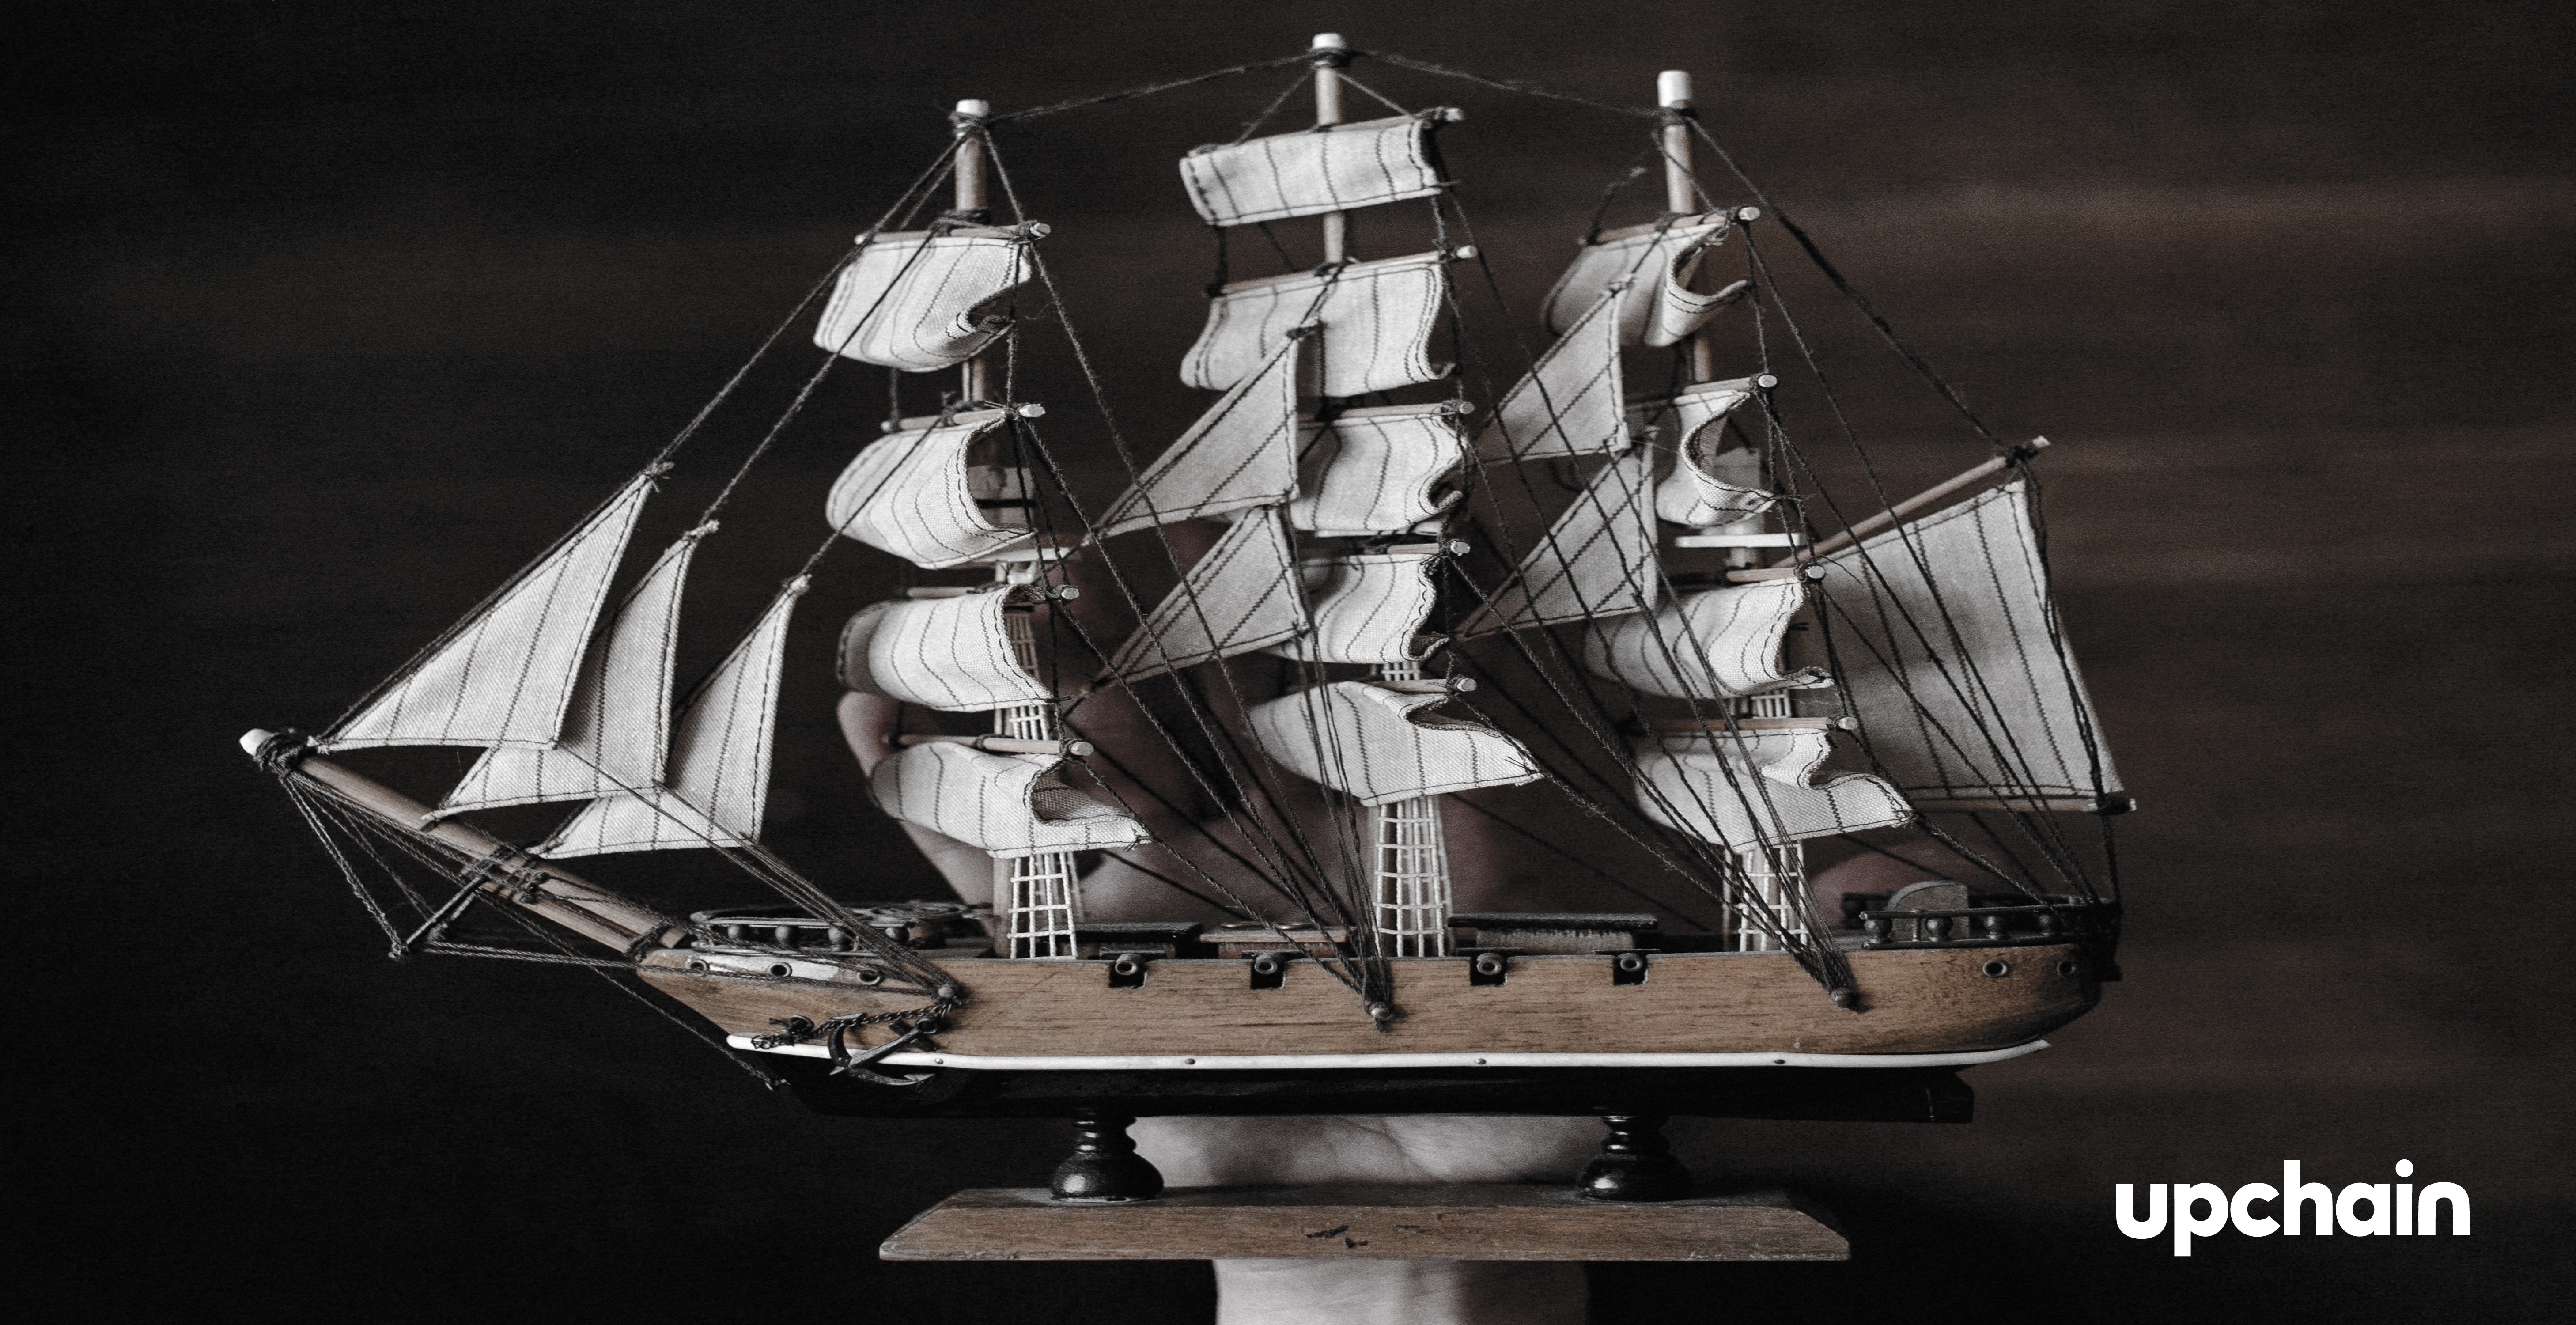 Model ship help up by a hand